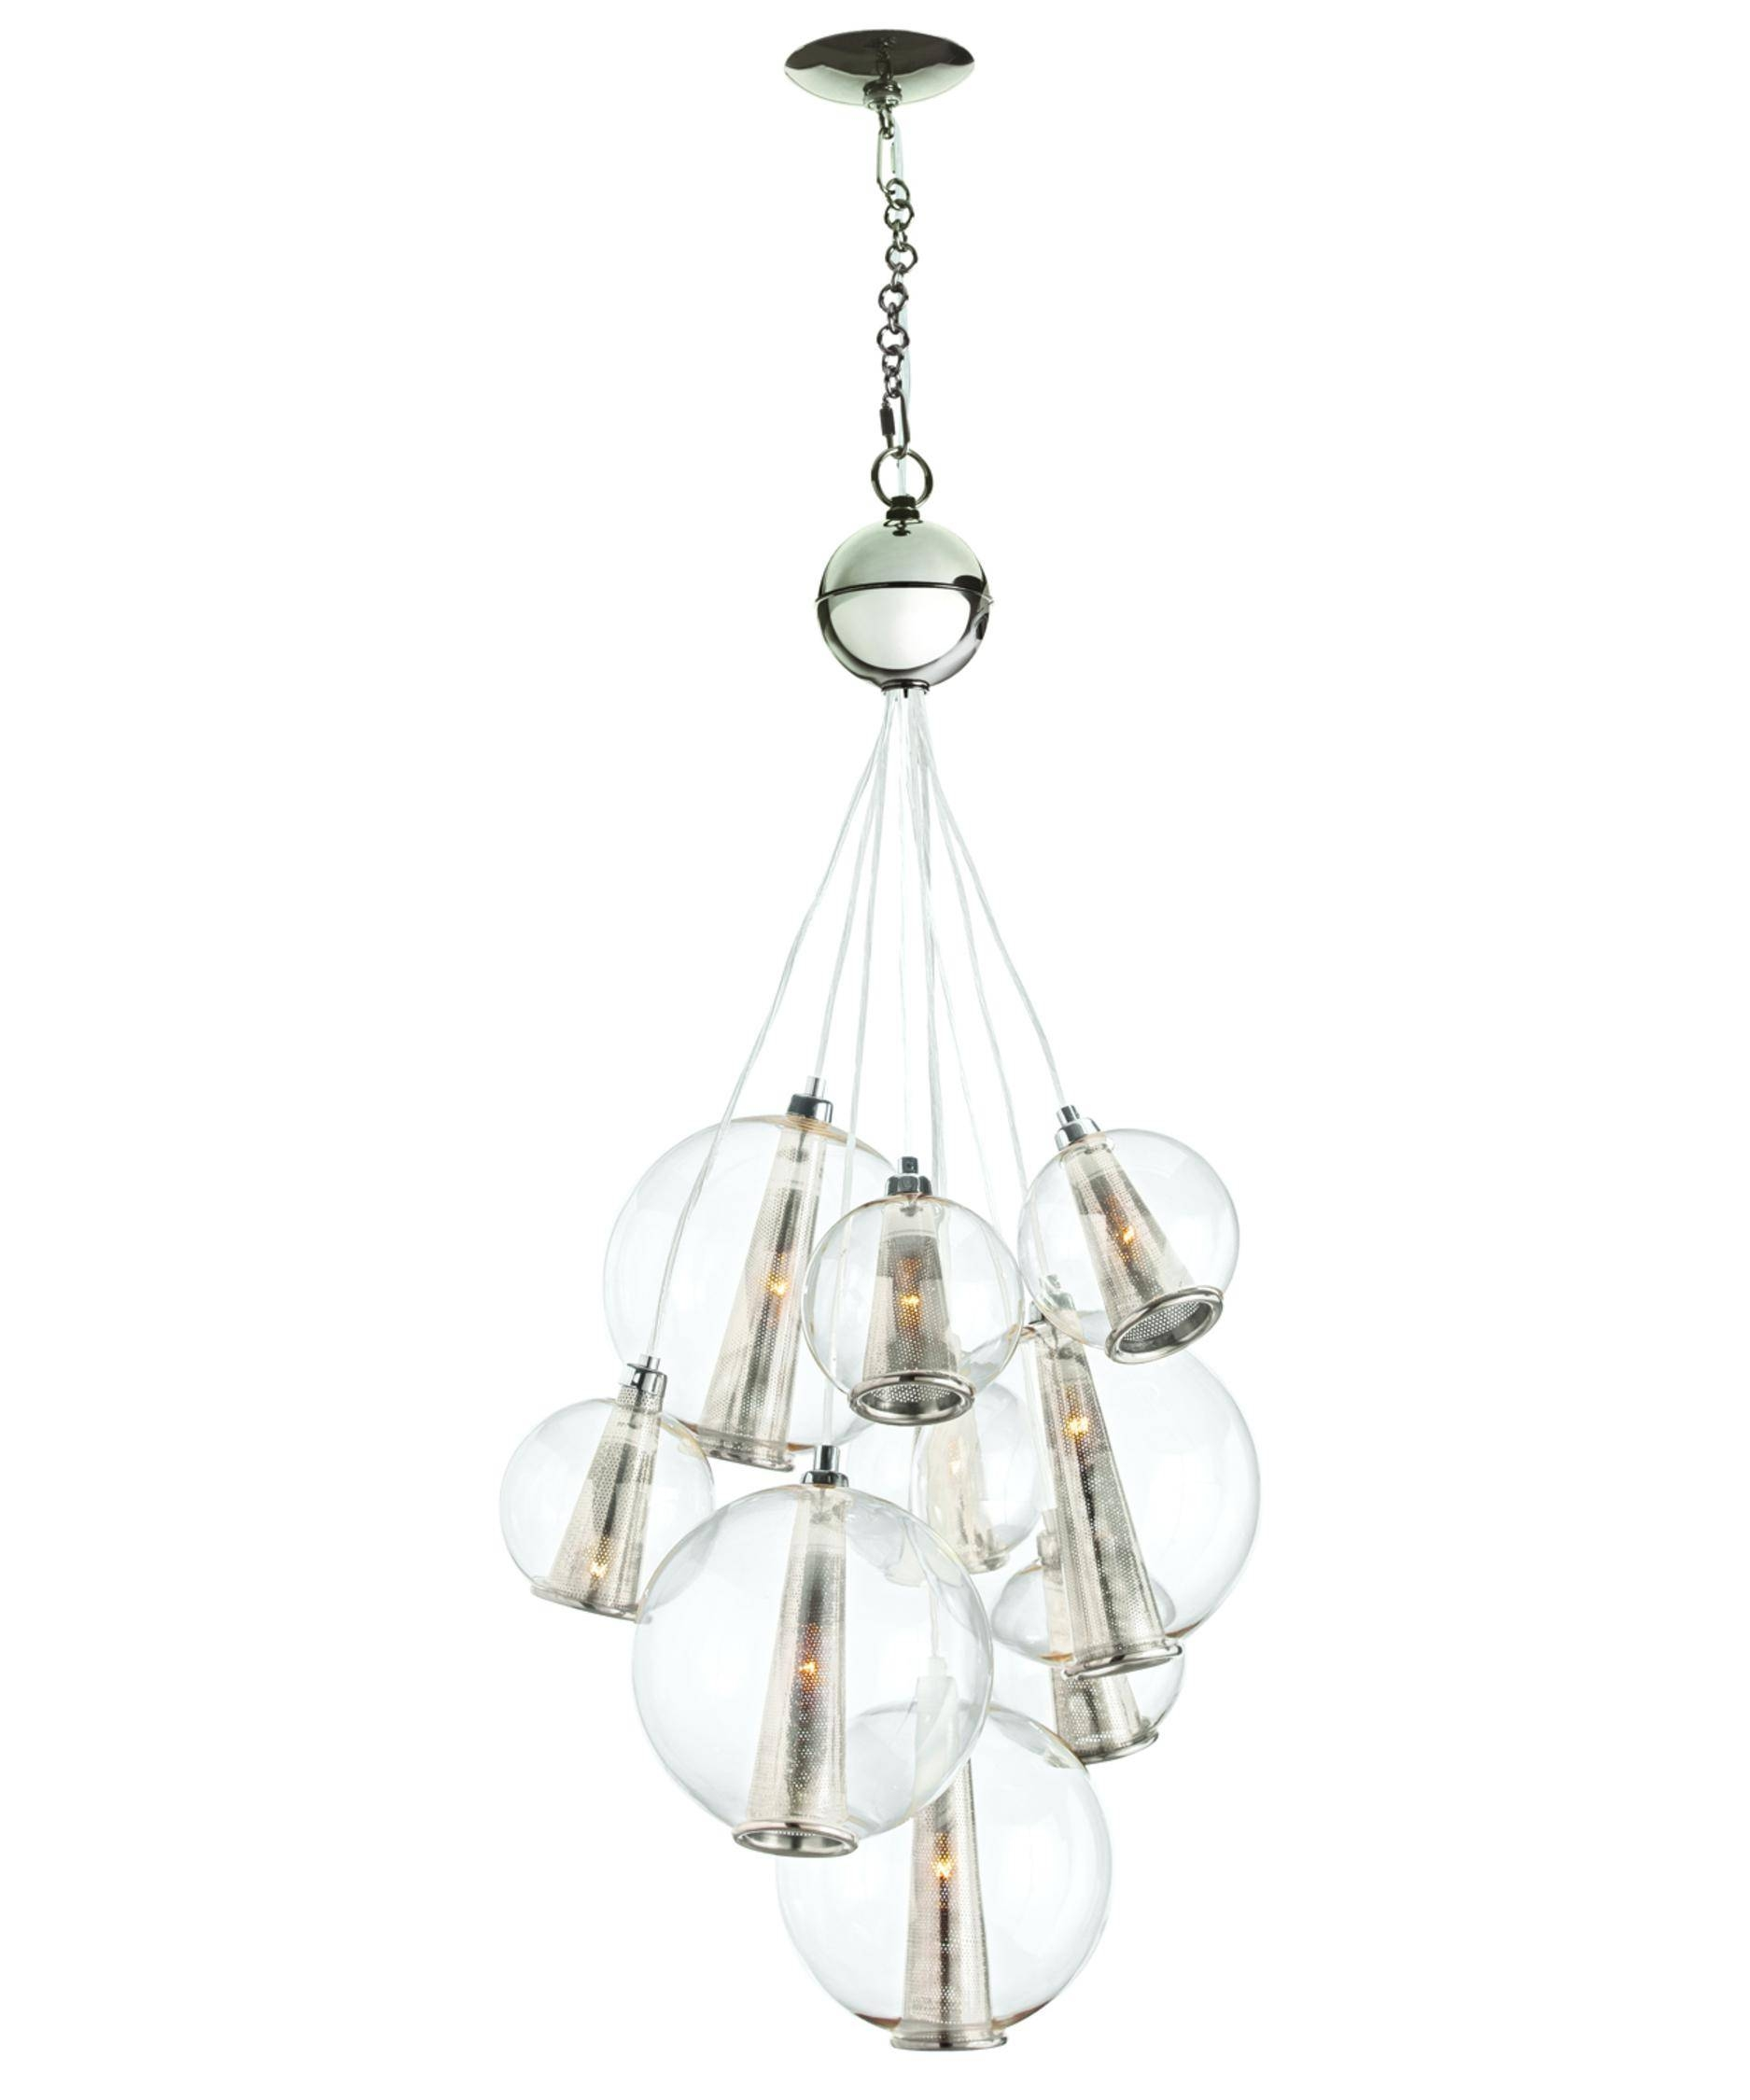 Arteriors Home Dk89907 Caviar 21 Inch Wide 1 Light Multi Pendant inside Caviar Pendant Lights (Image 6 of 15)